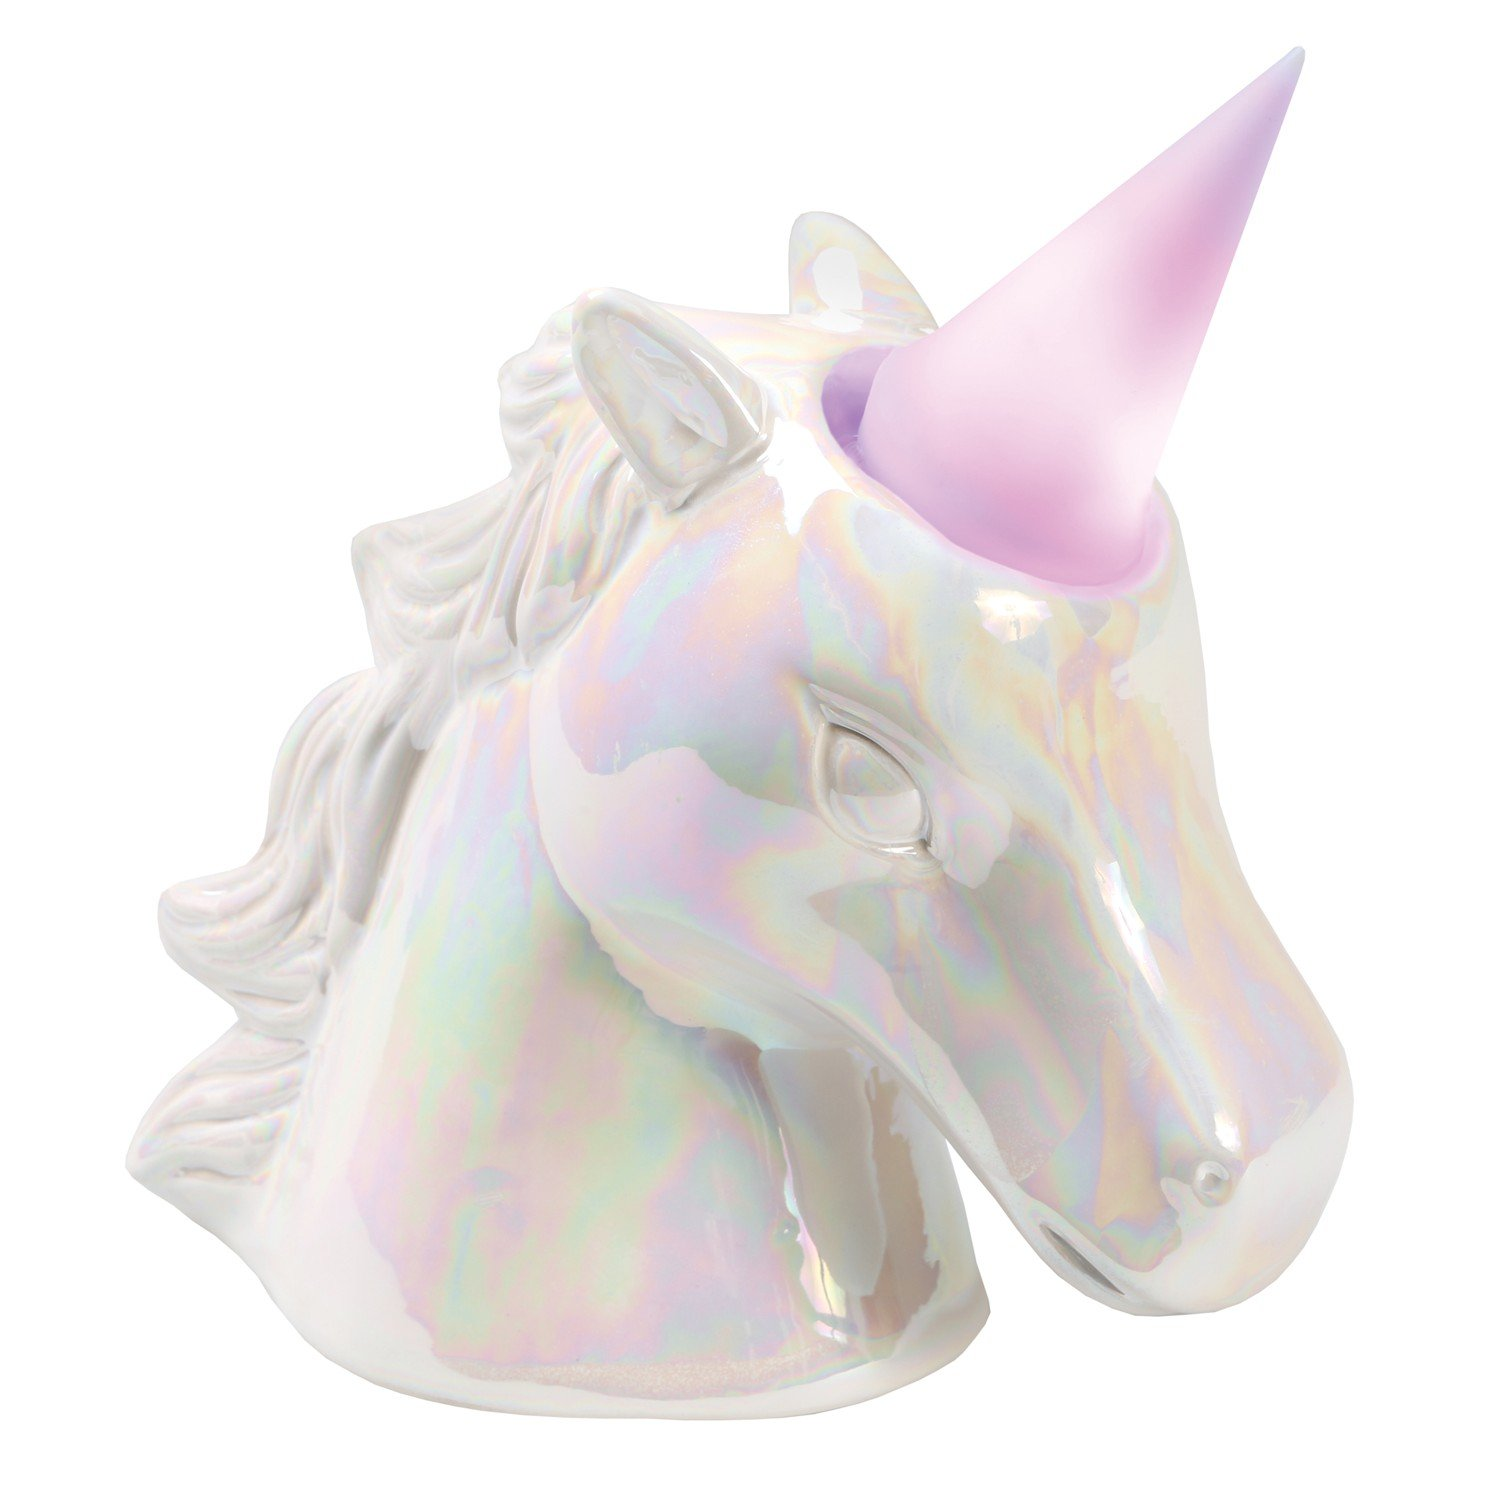 What on Earth Unicorn Night Light Coin Bank - Removable Color-Changing LED Lighted Horn by WHAT ON EARTH